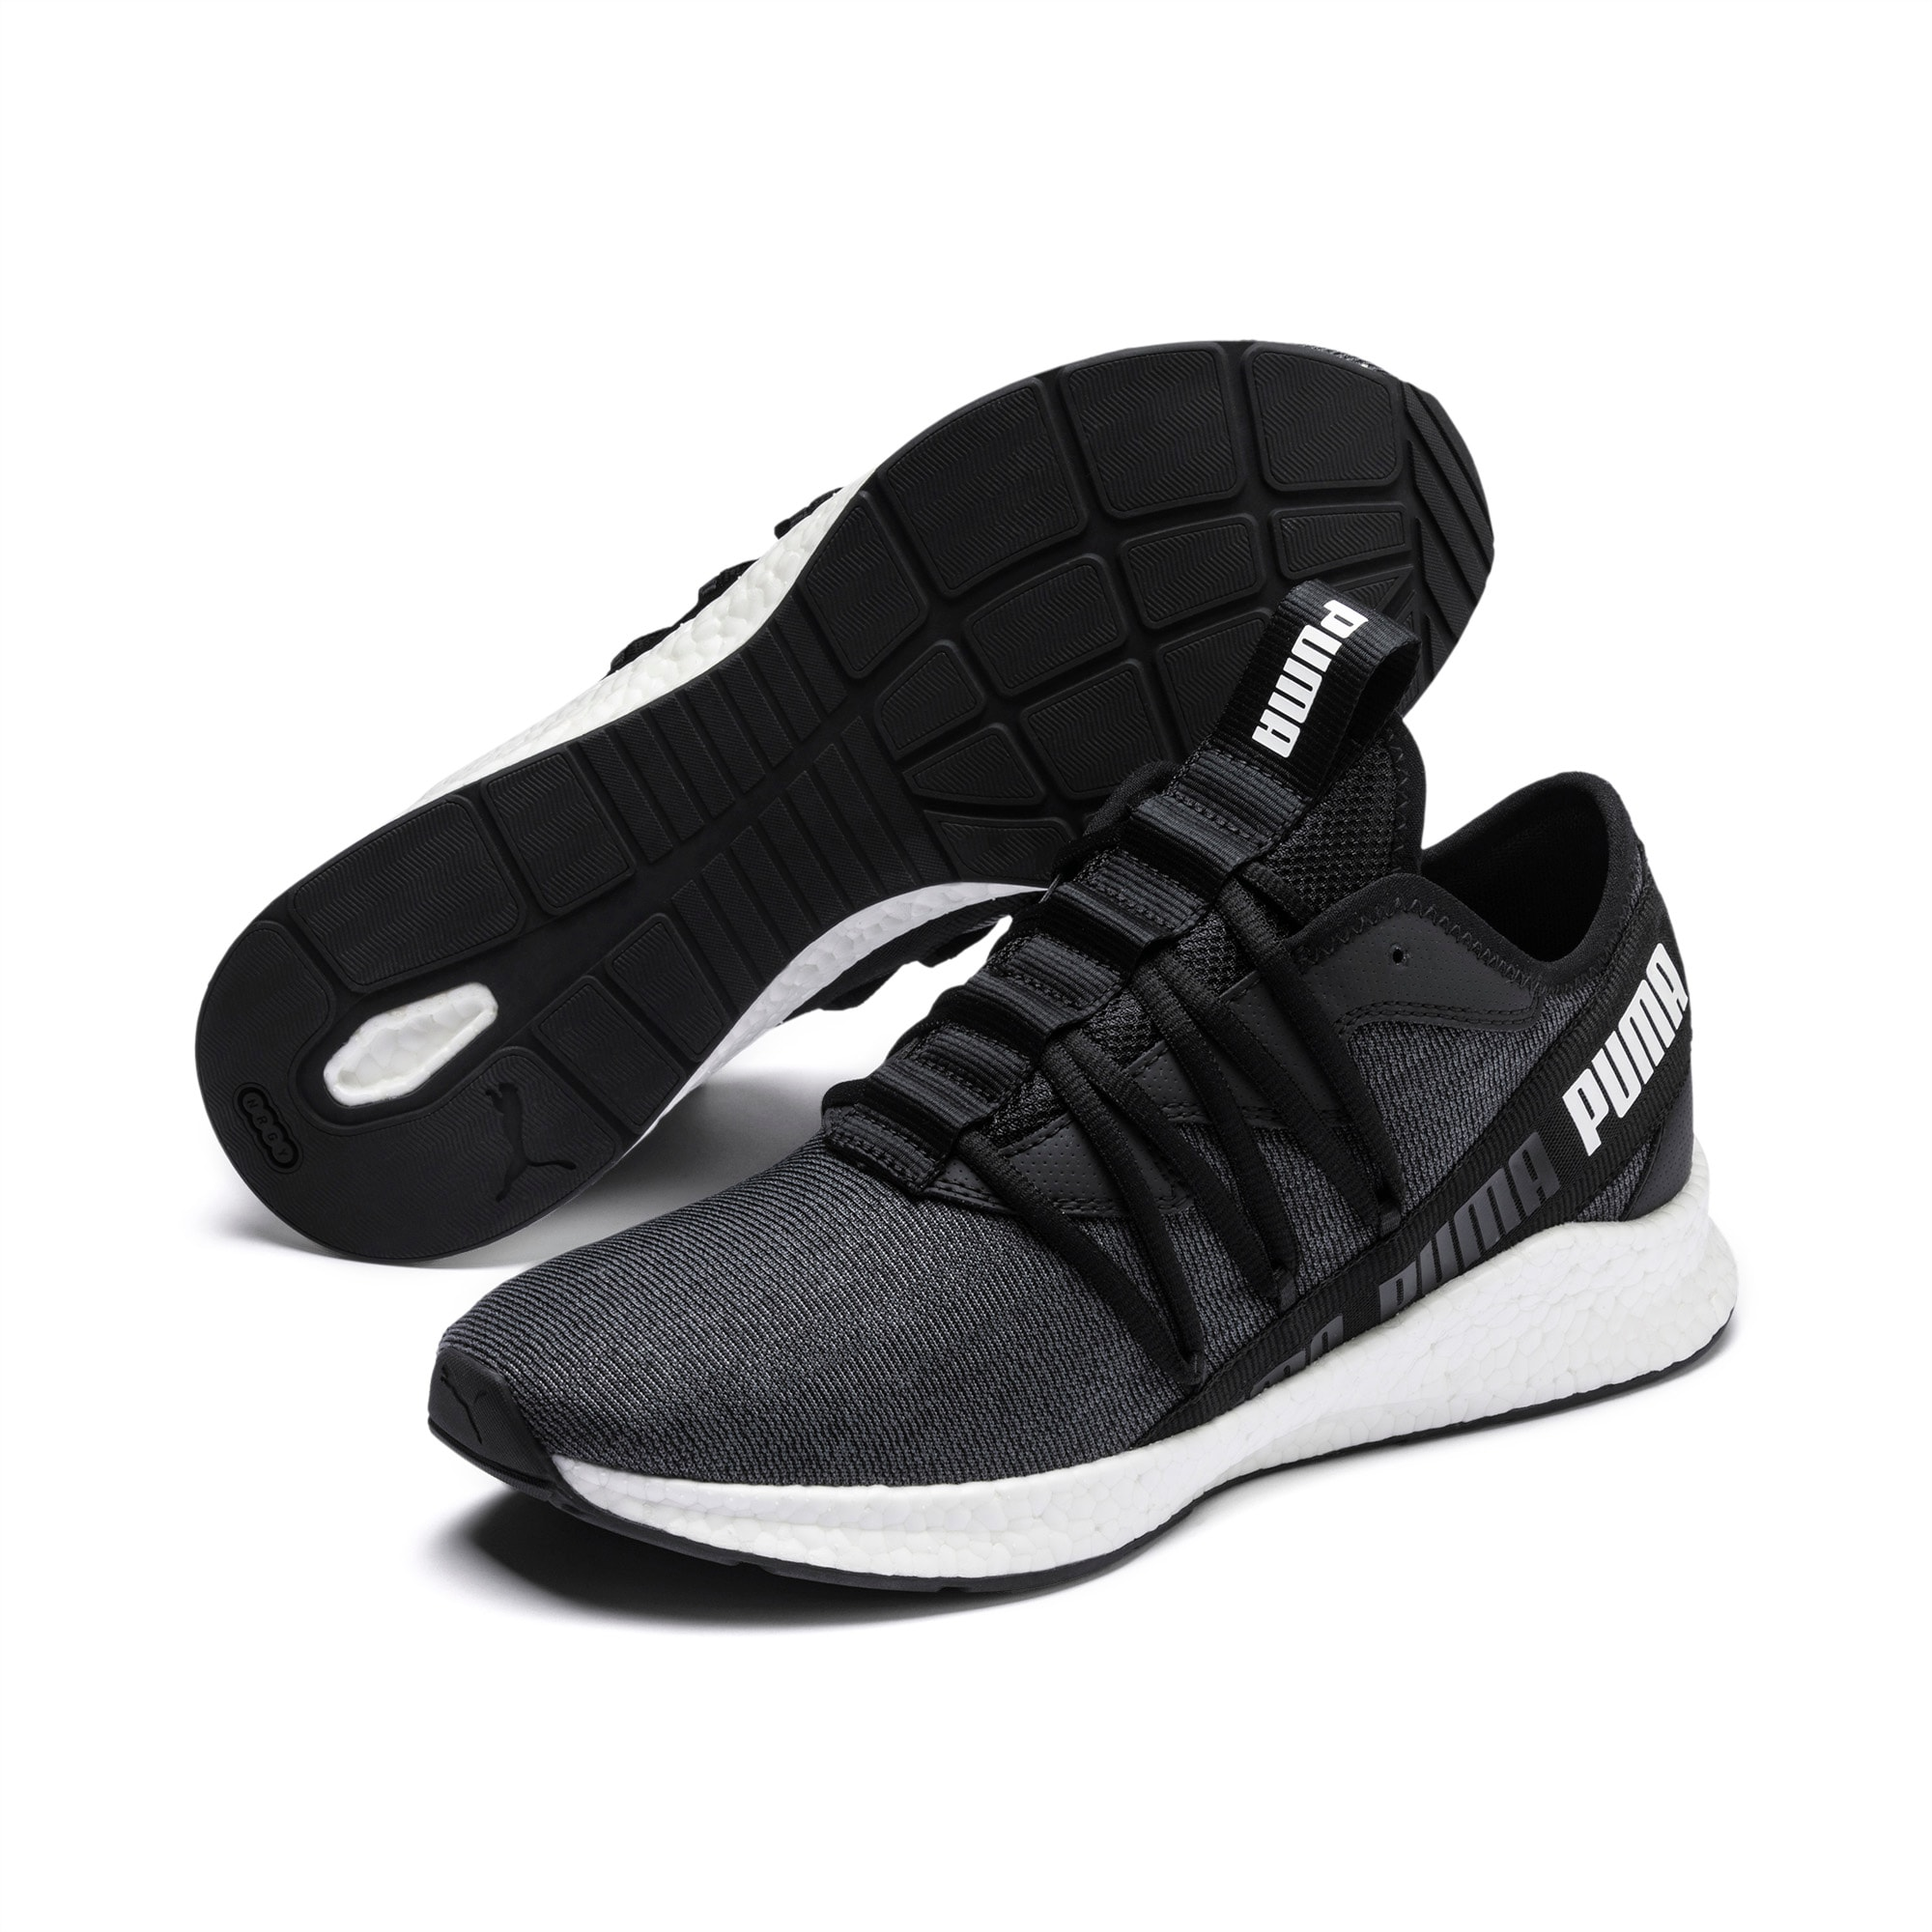 NRGY Star Knit Running Shoes